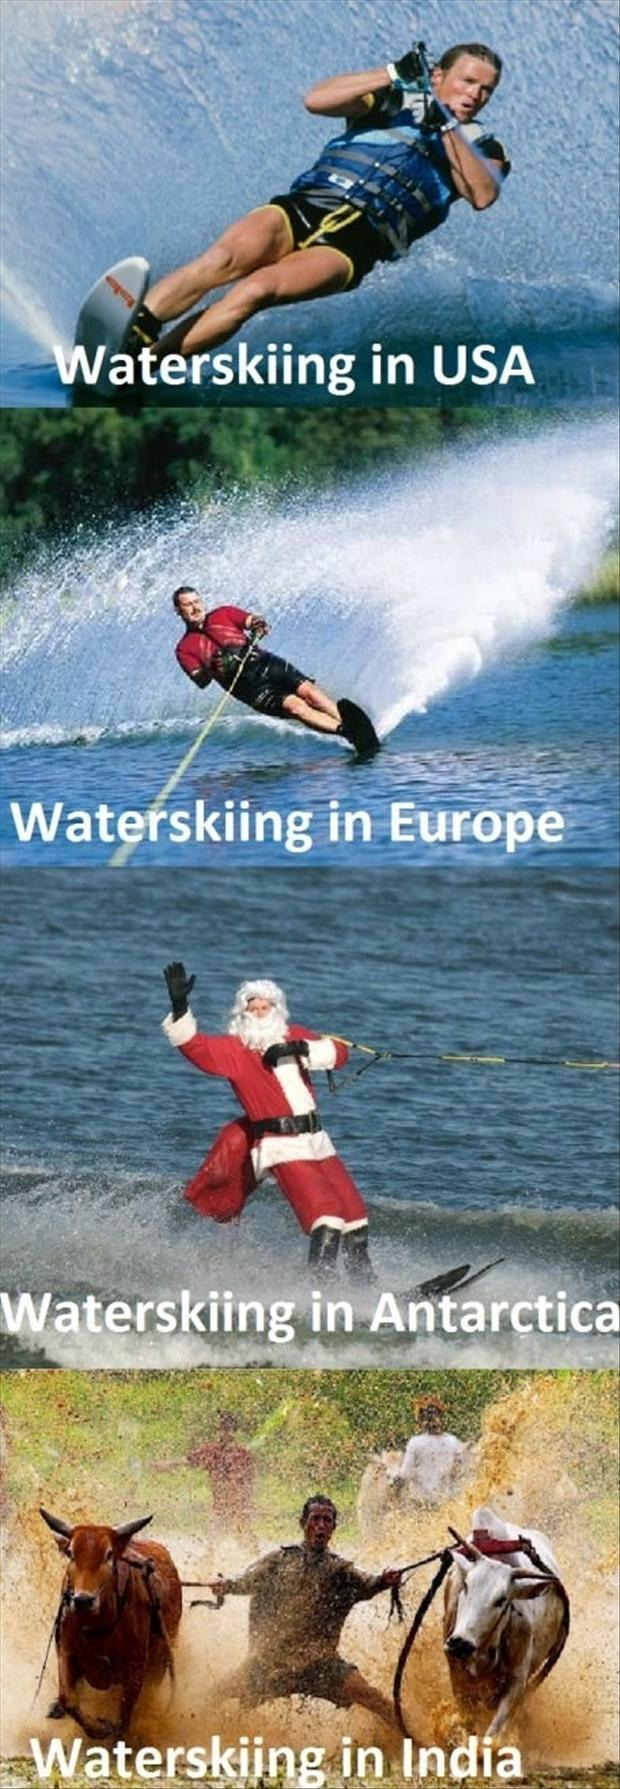 funny waterskiing